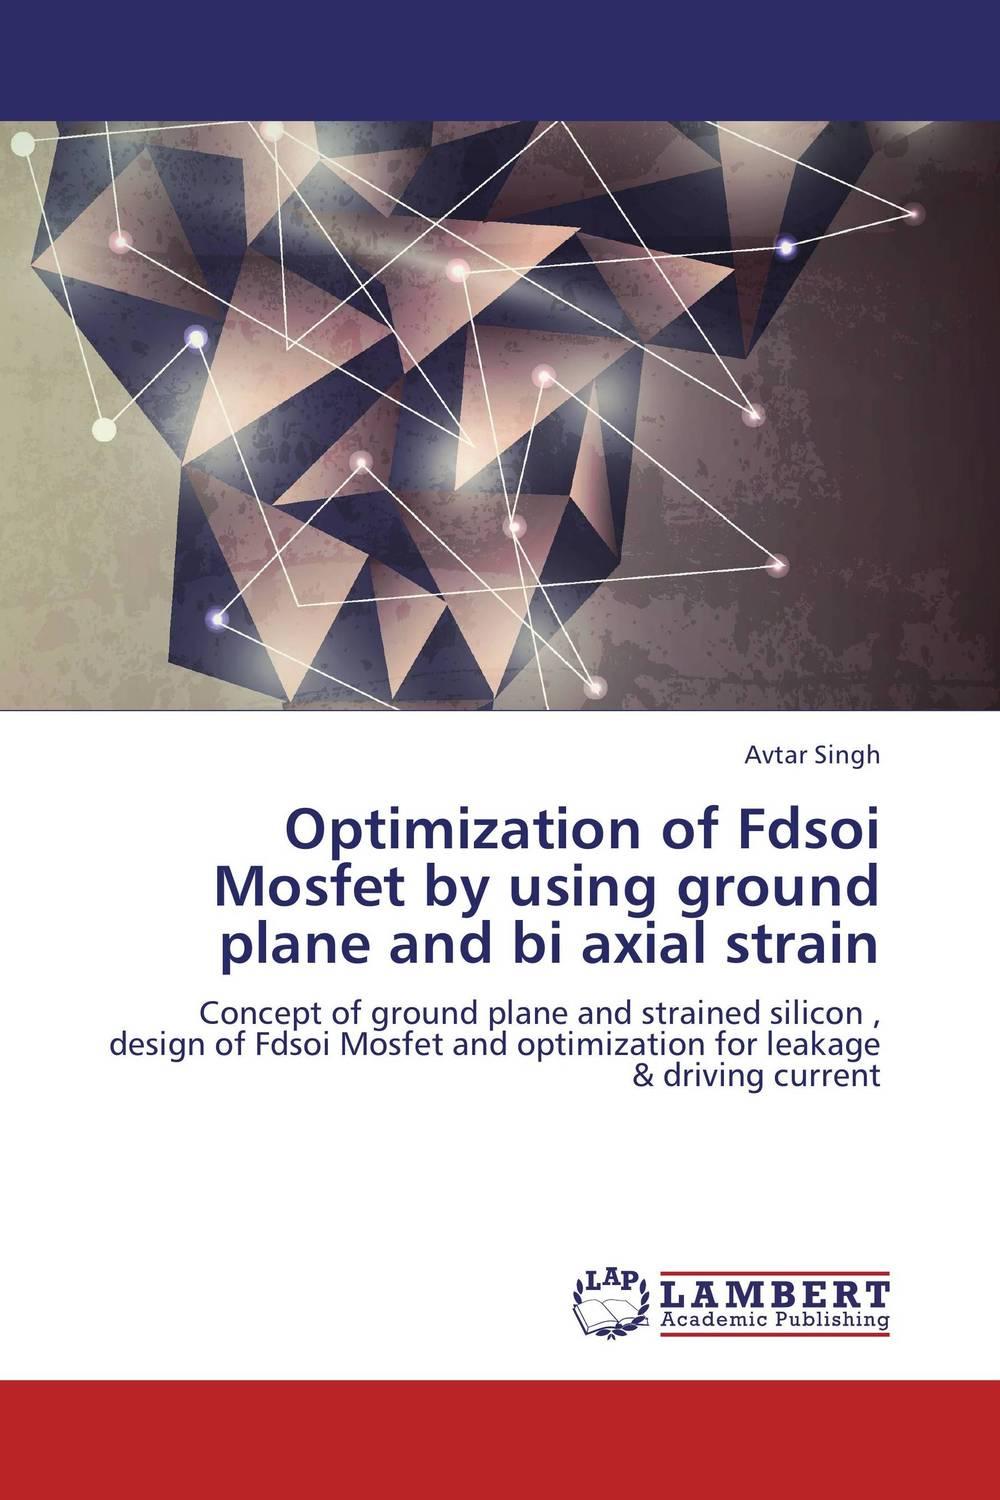 купить Optimization of Fdsoi Mosfet by using ground plane and bi axial strain по цене 4631 рублей